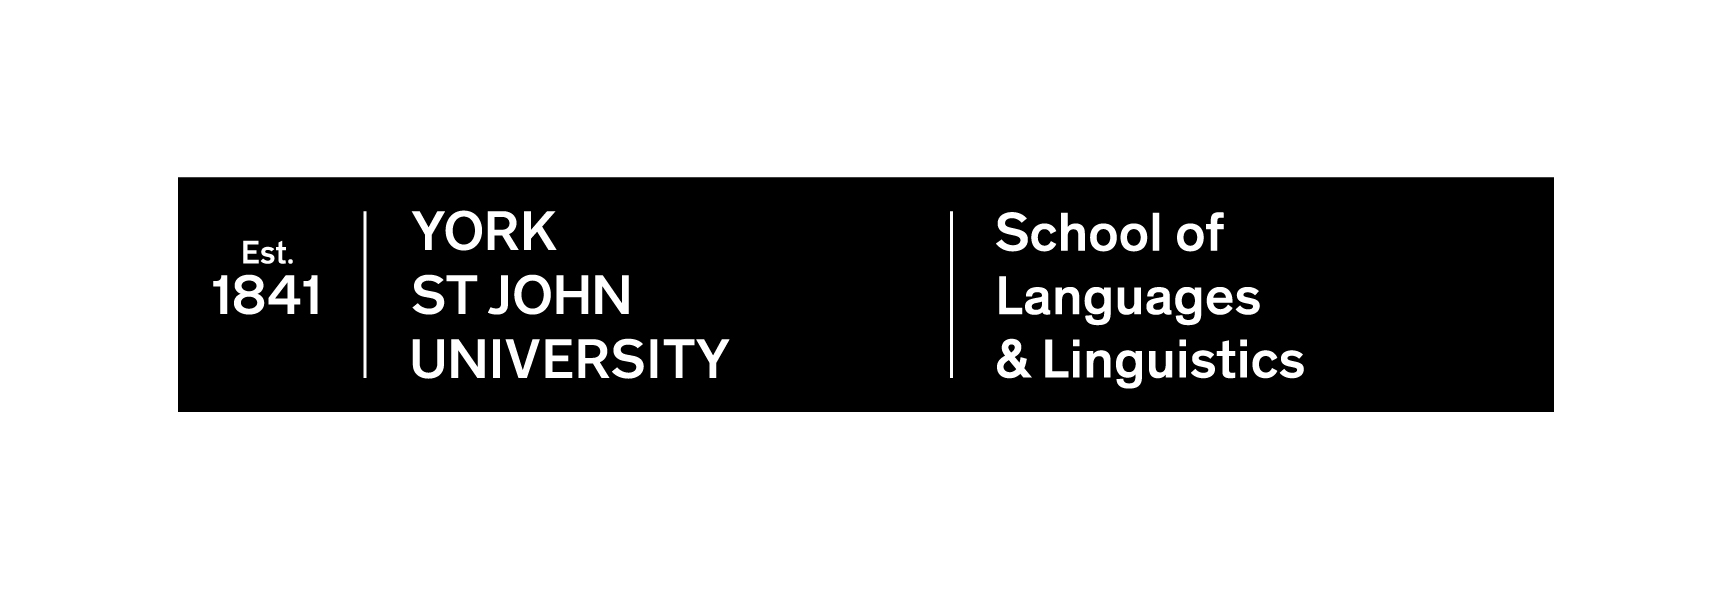 School-of-Languages-and-Linguistics